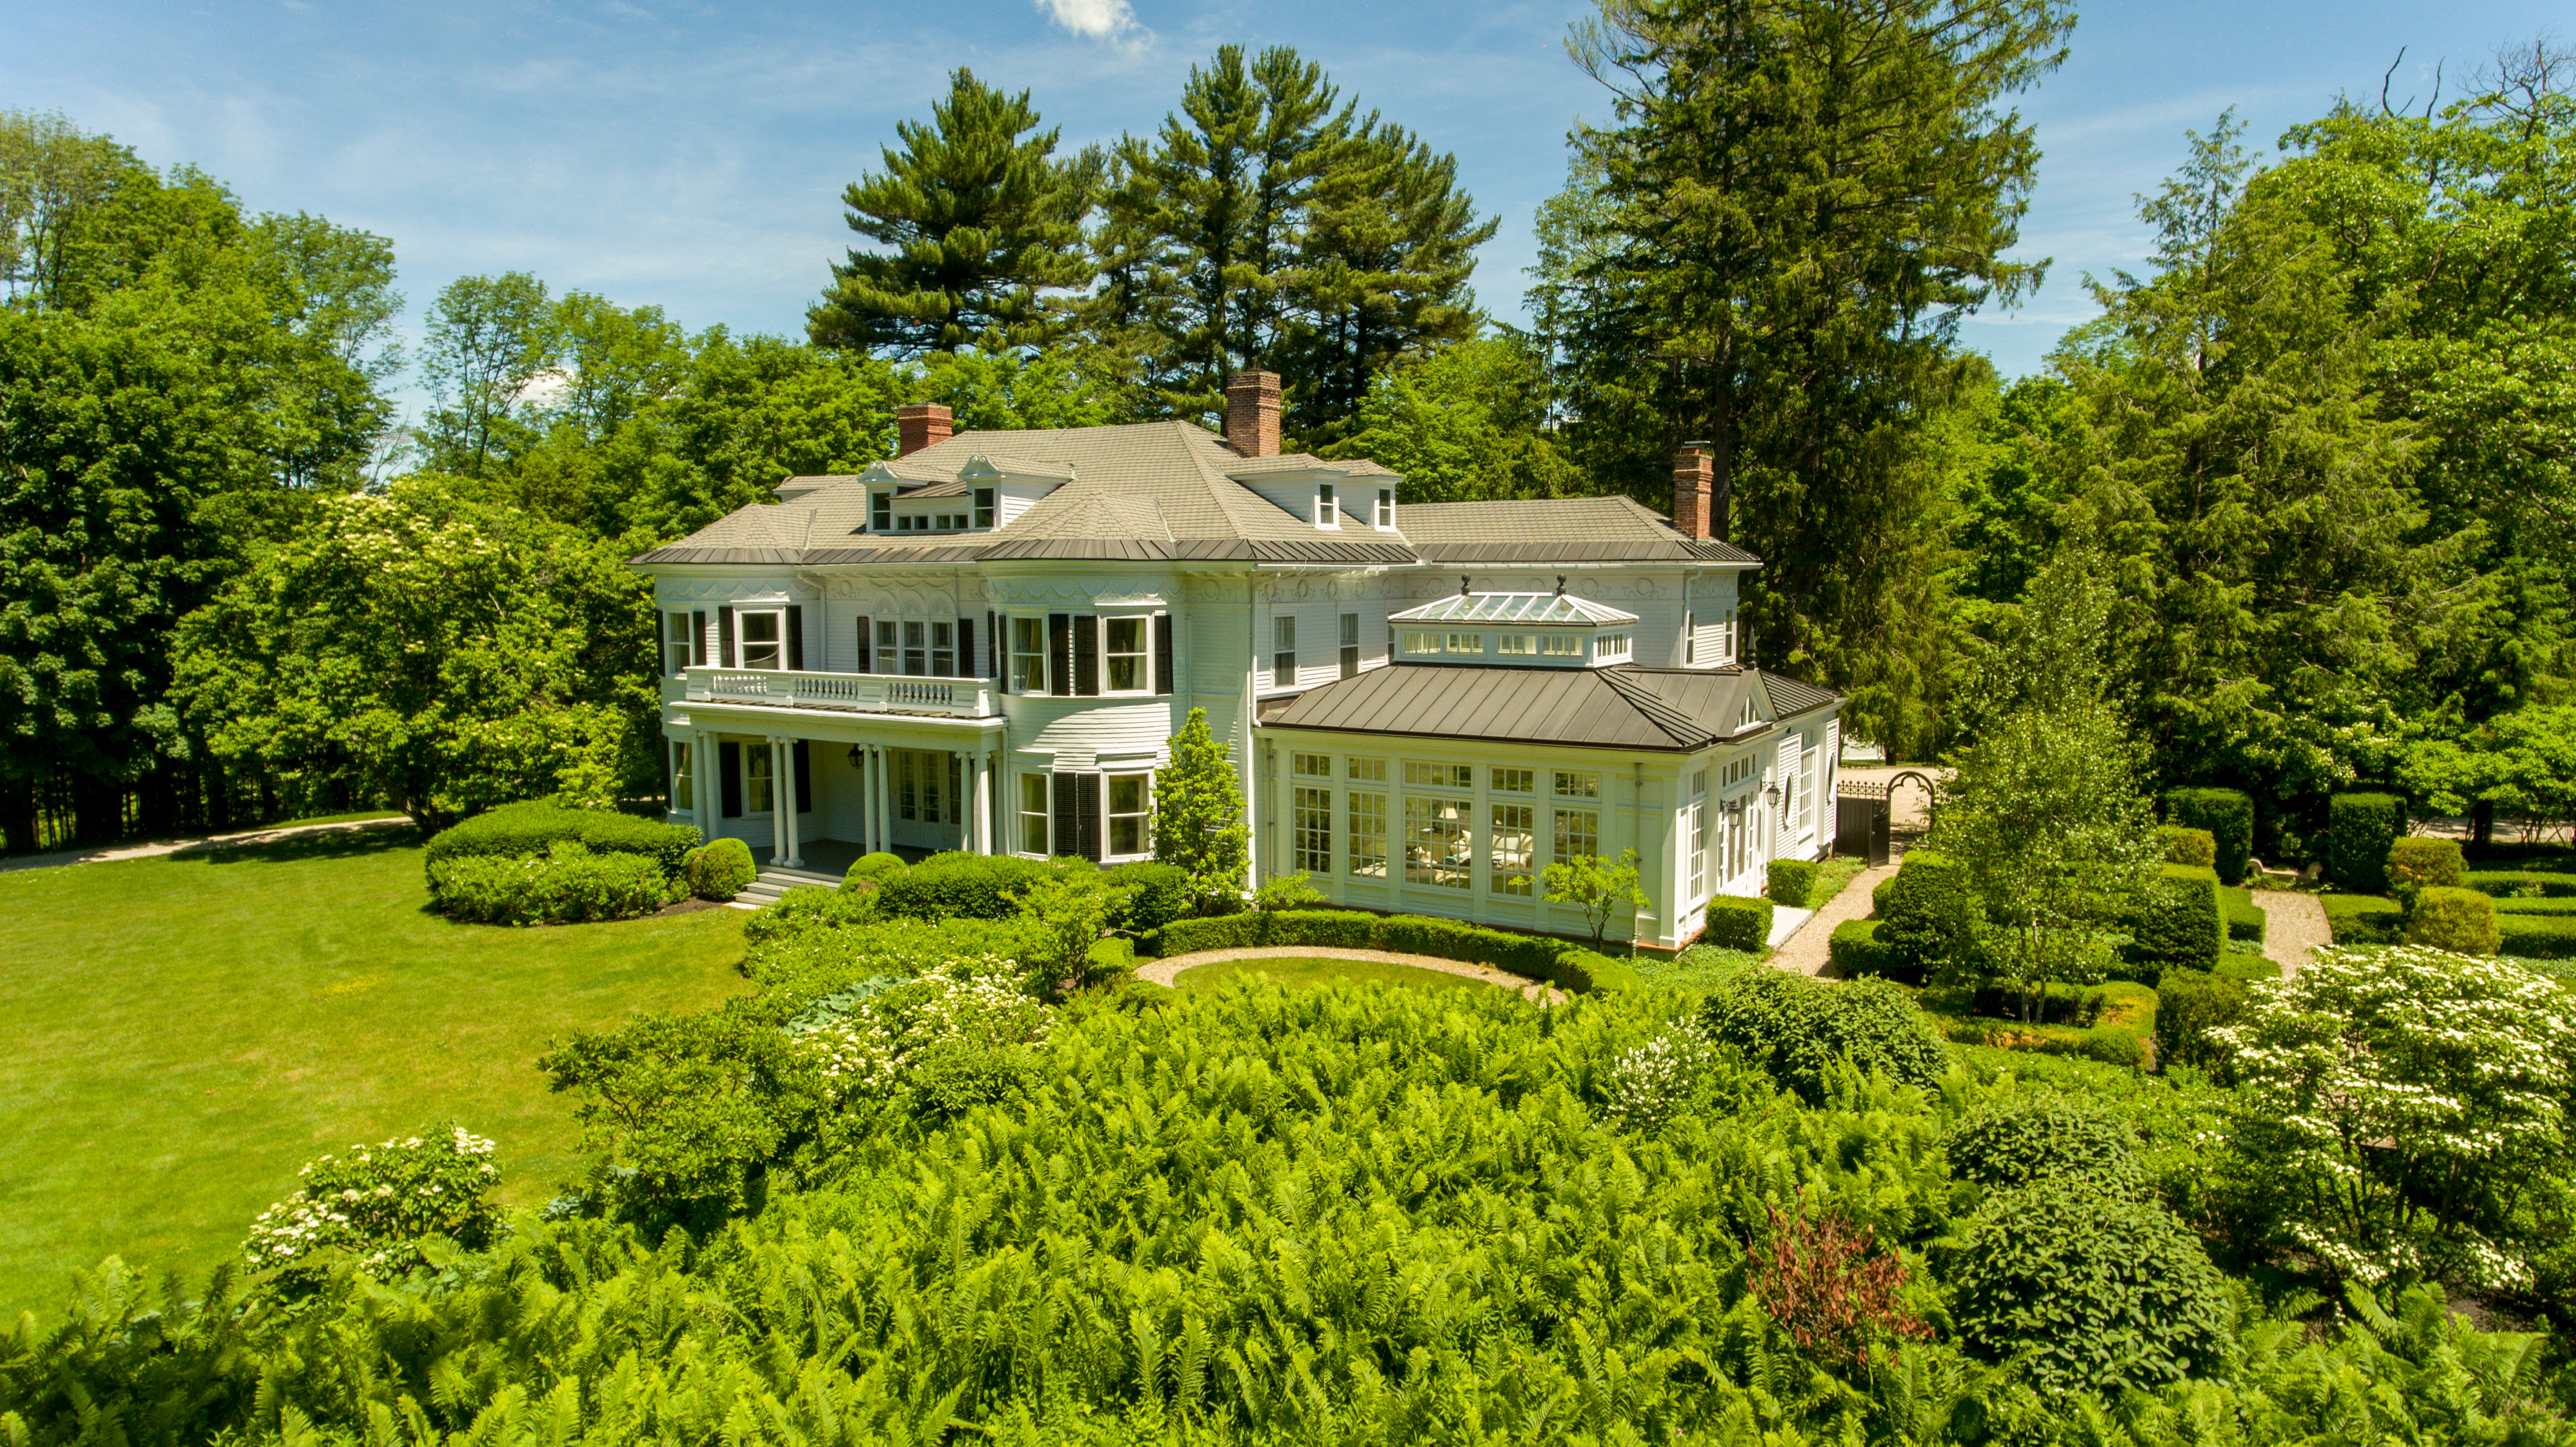 Single Family Home for Sale at Thistlewood - A Timeless & Classic Berkshire Cottage 151 Walker St Lenox, Massachusetts, 01240 United States